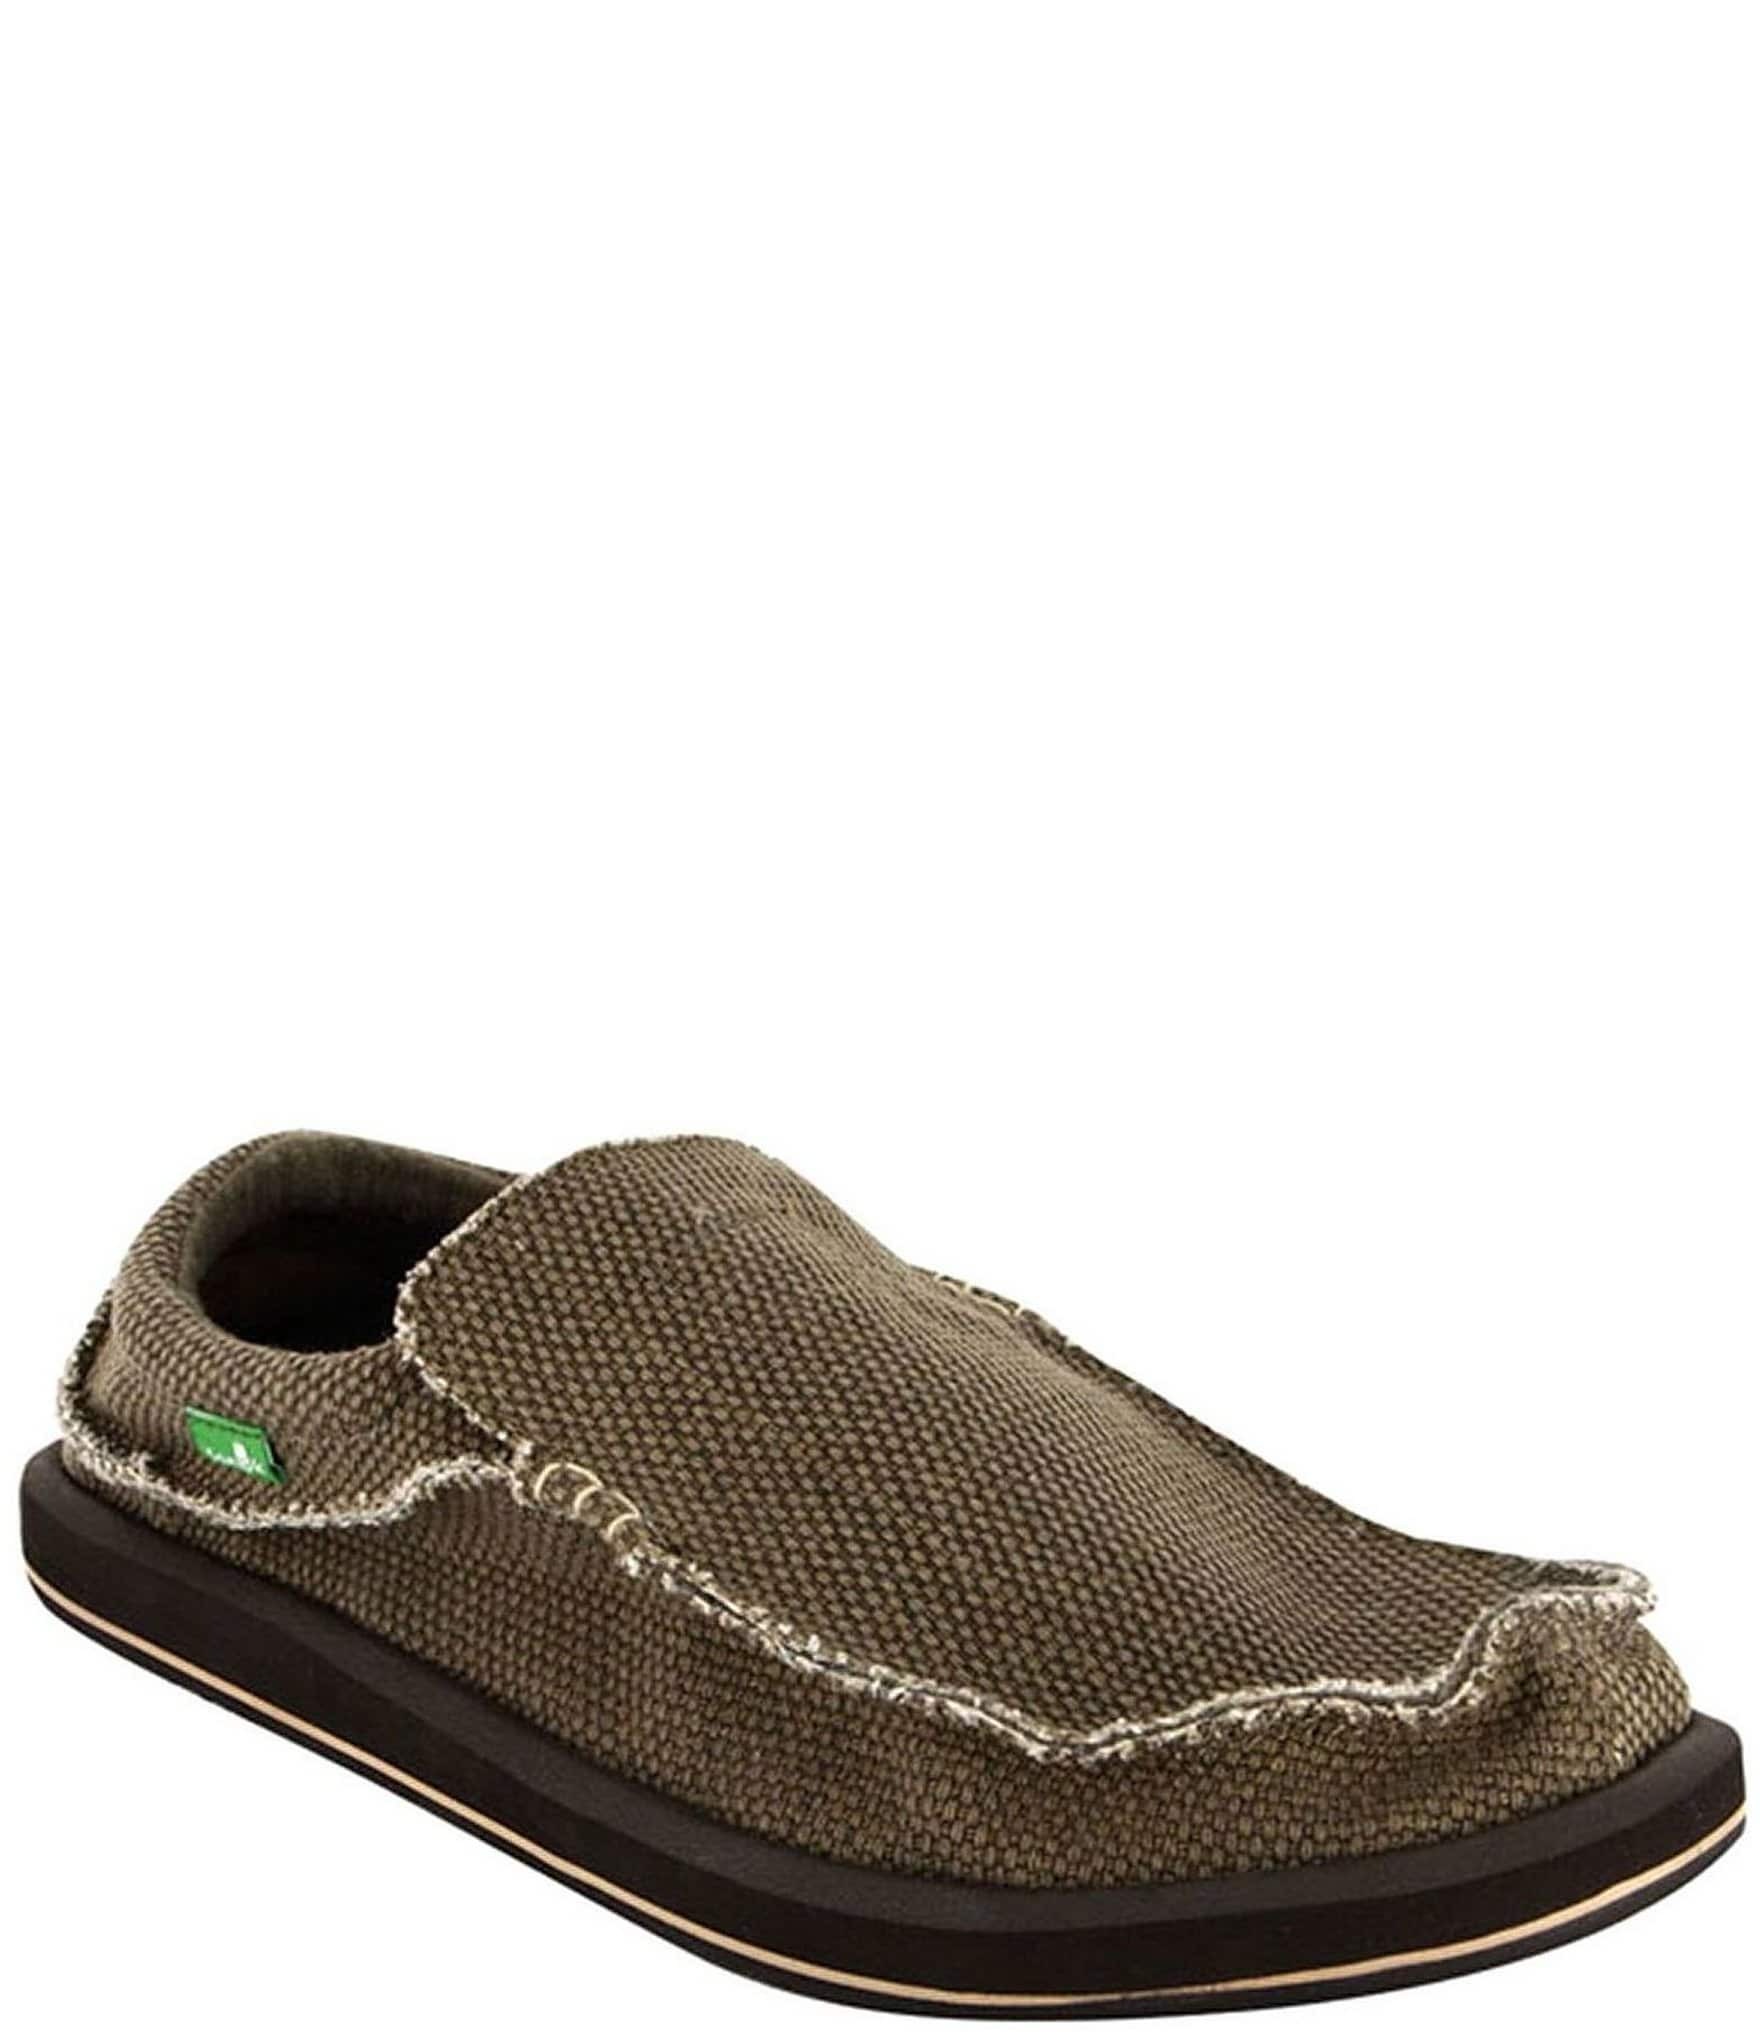 sanuk chiba slip on shoes dillards